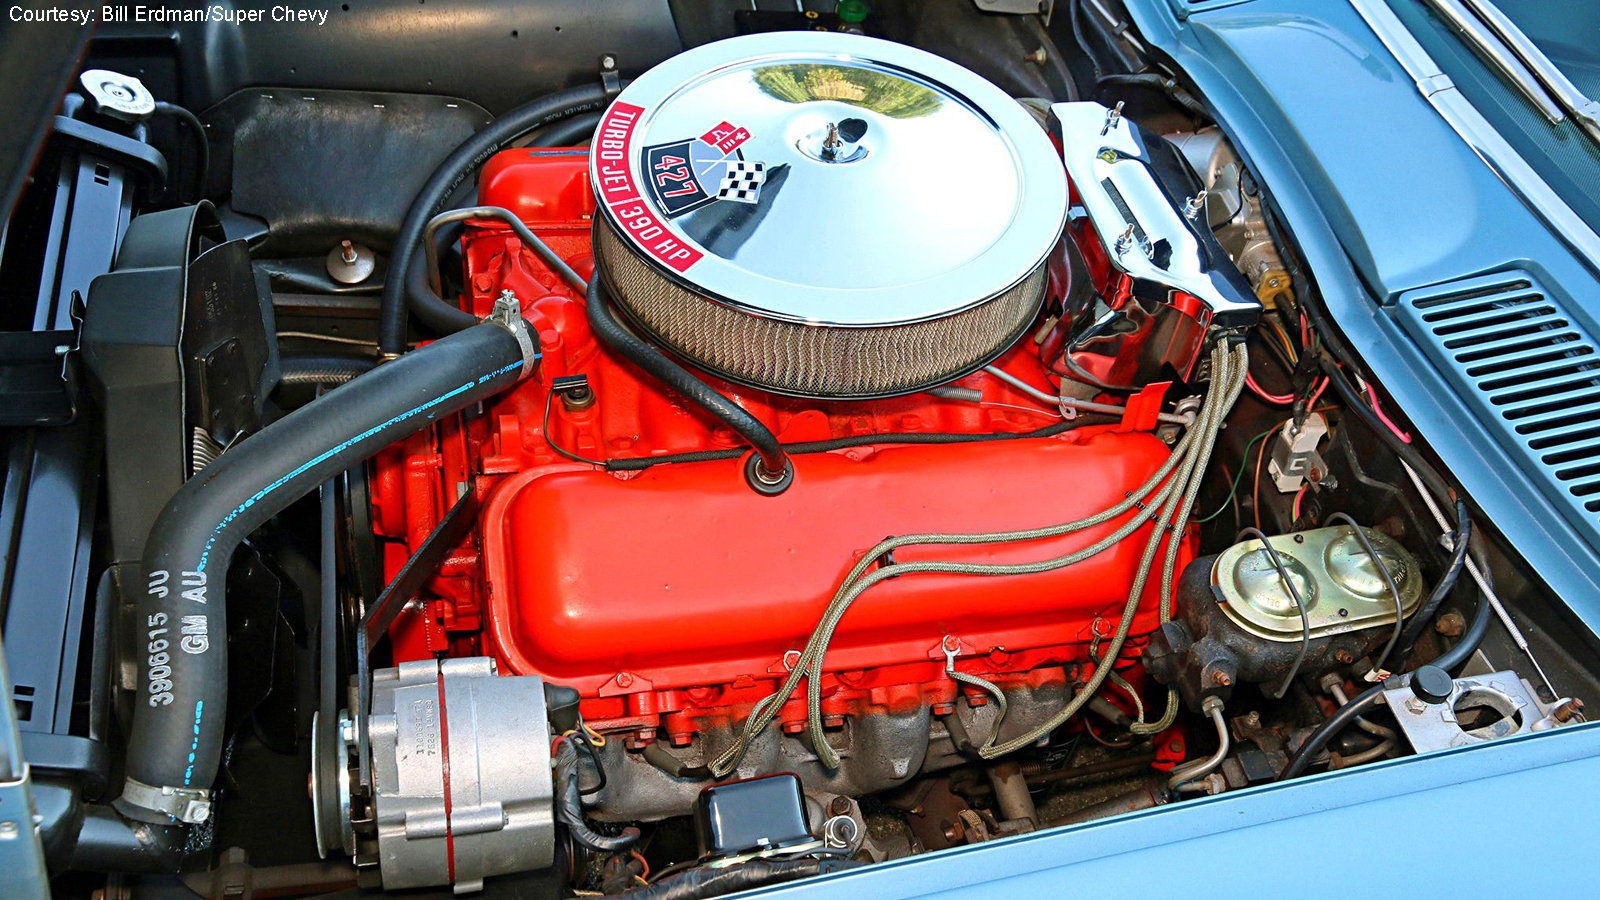 The Life of James Dipersia's 67 Corvette